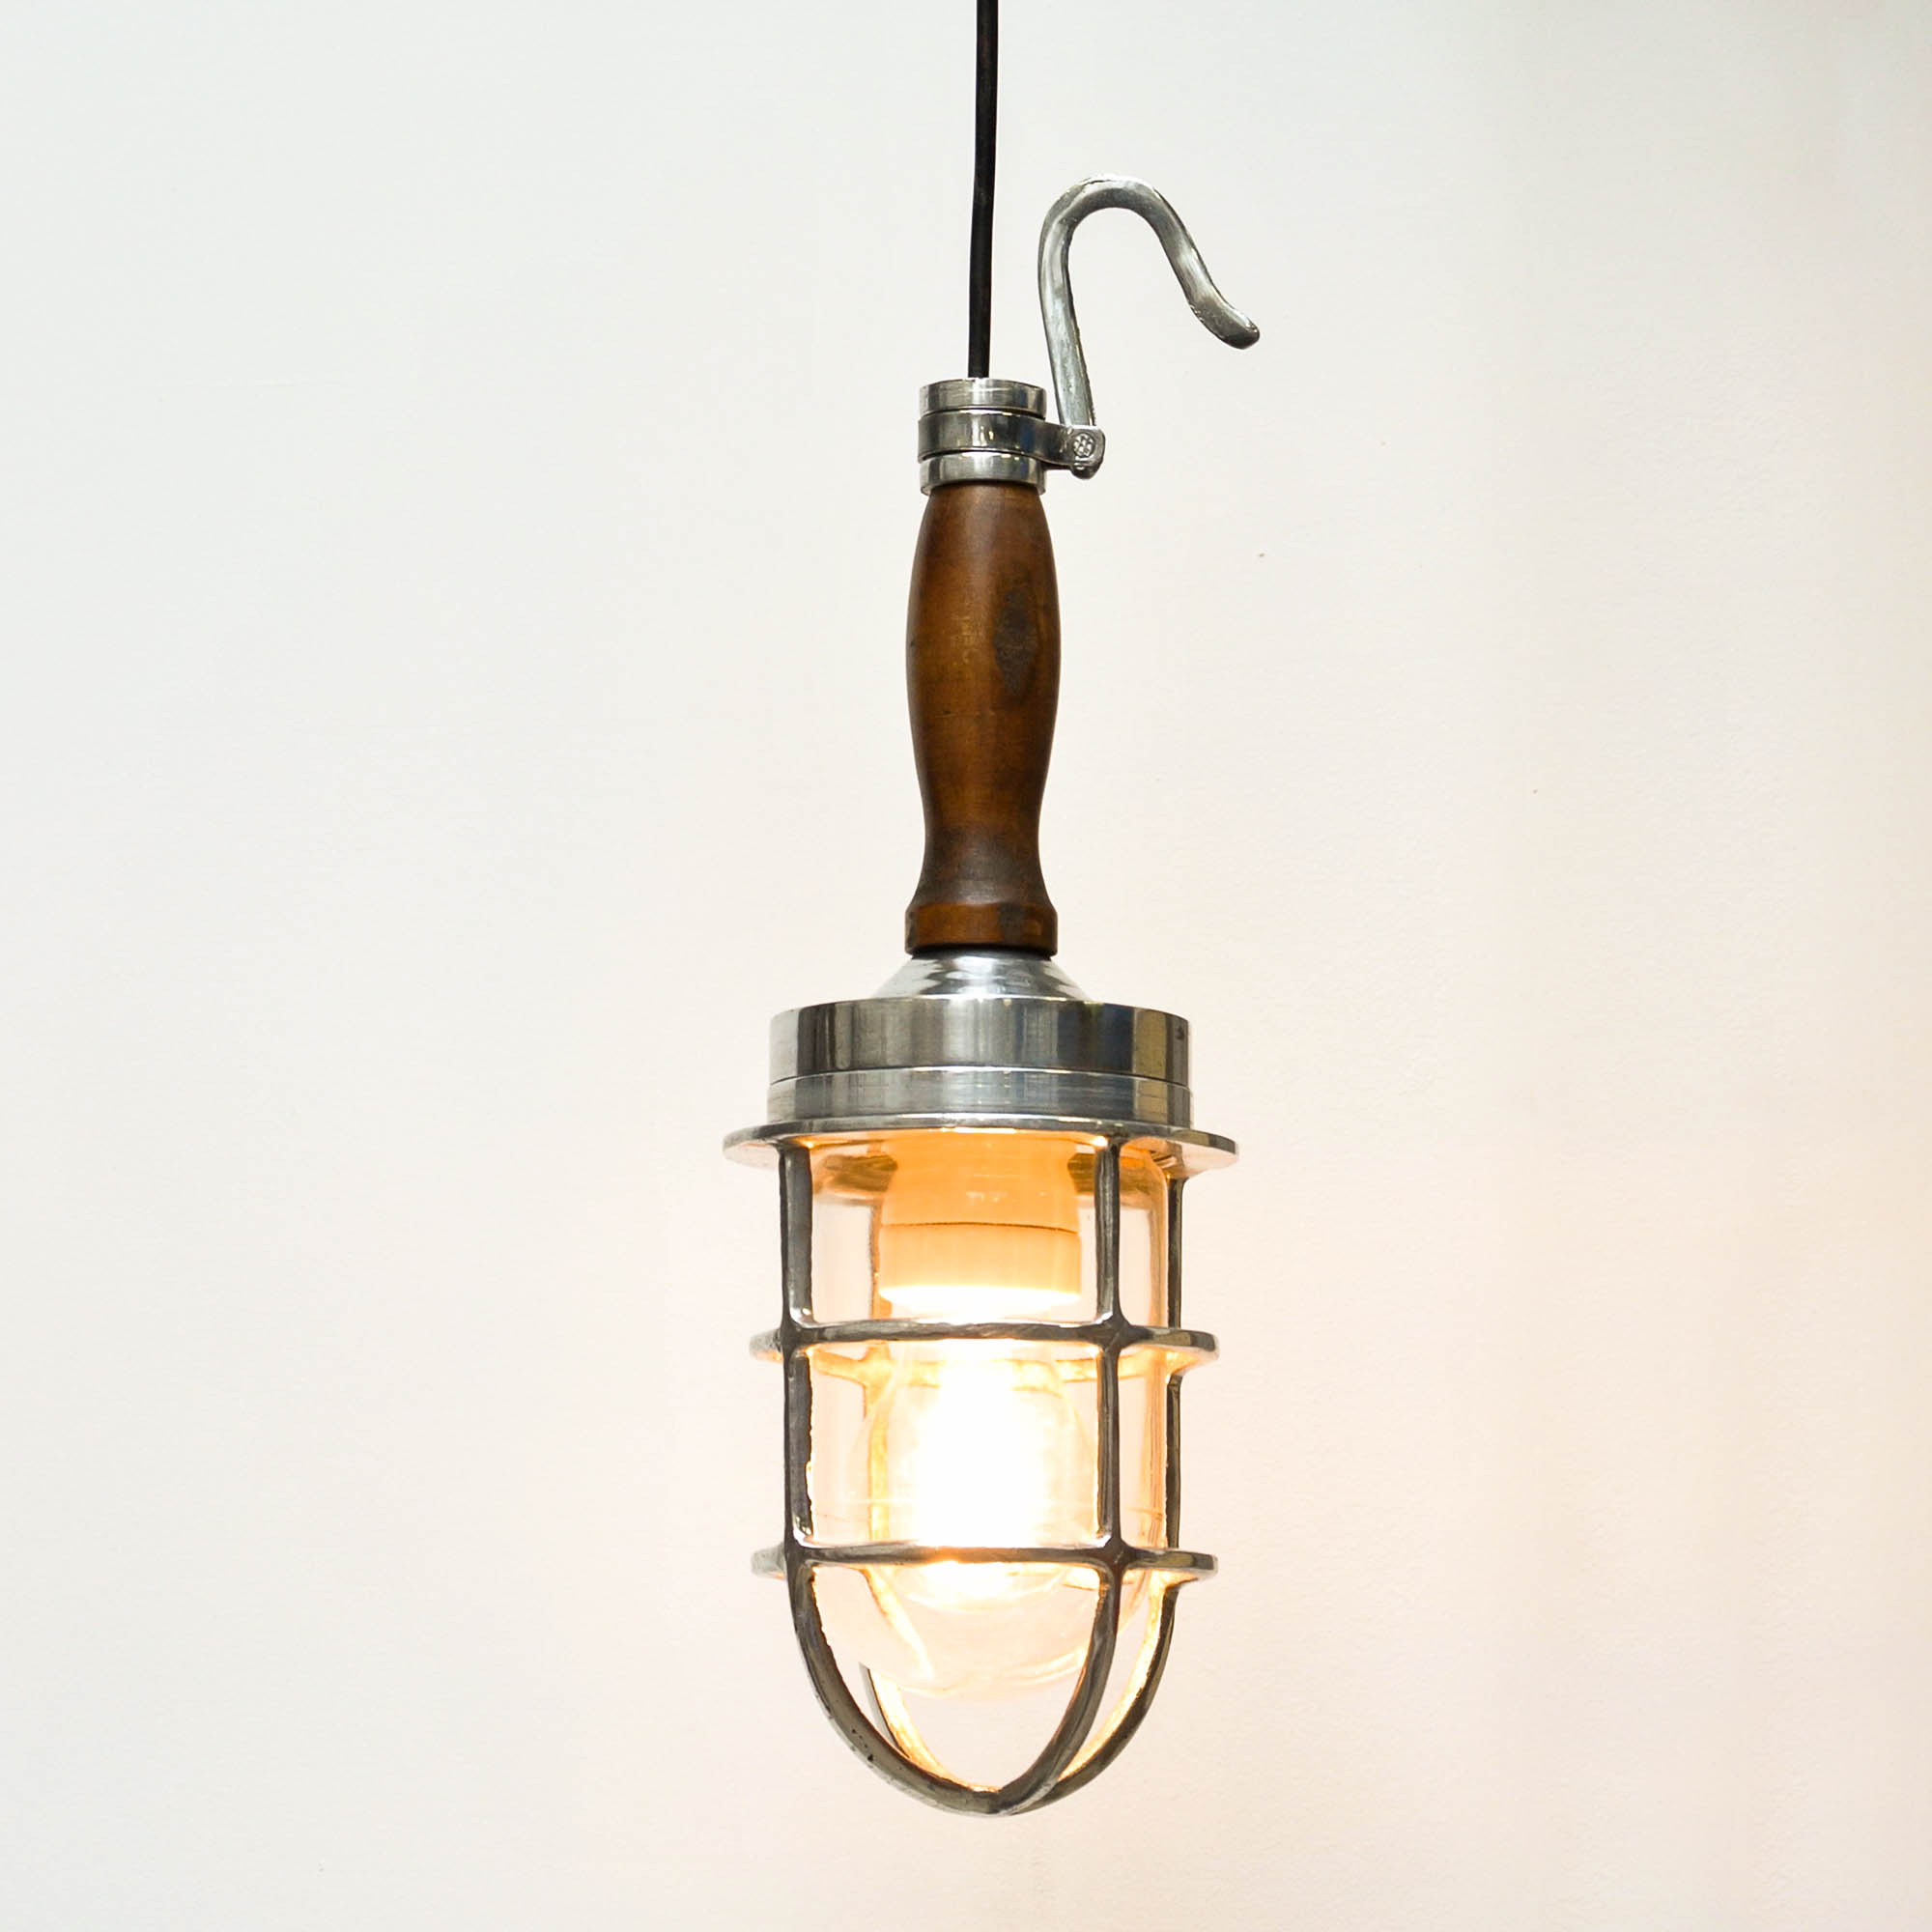 ... Portable Lamp With Wood Handle Anciellitude ...